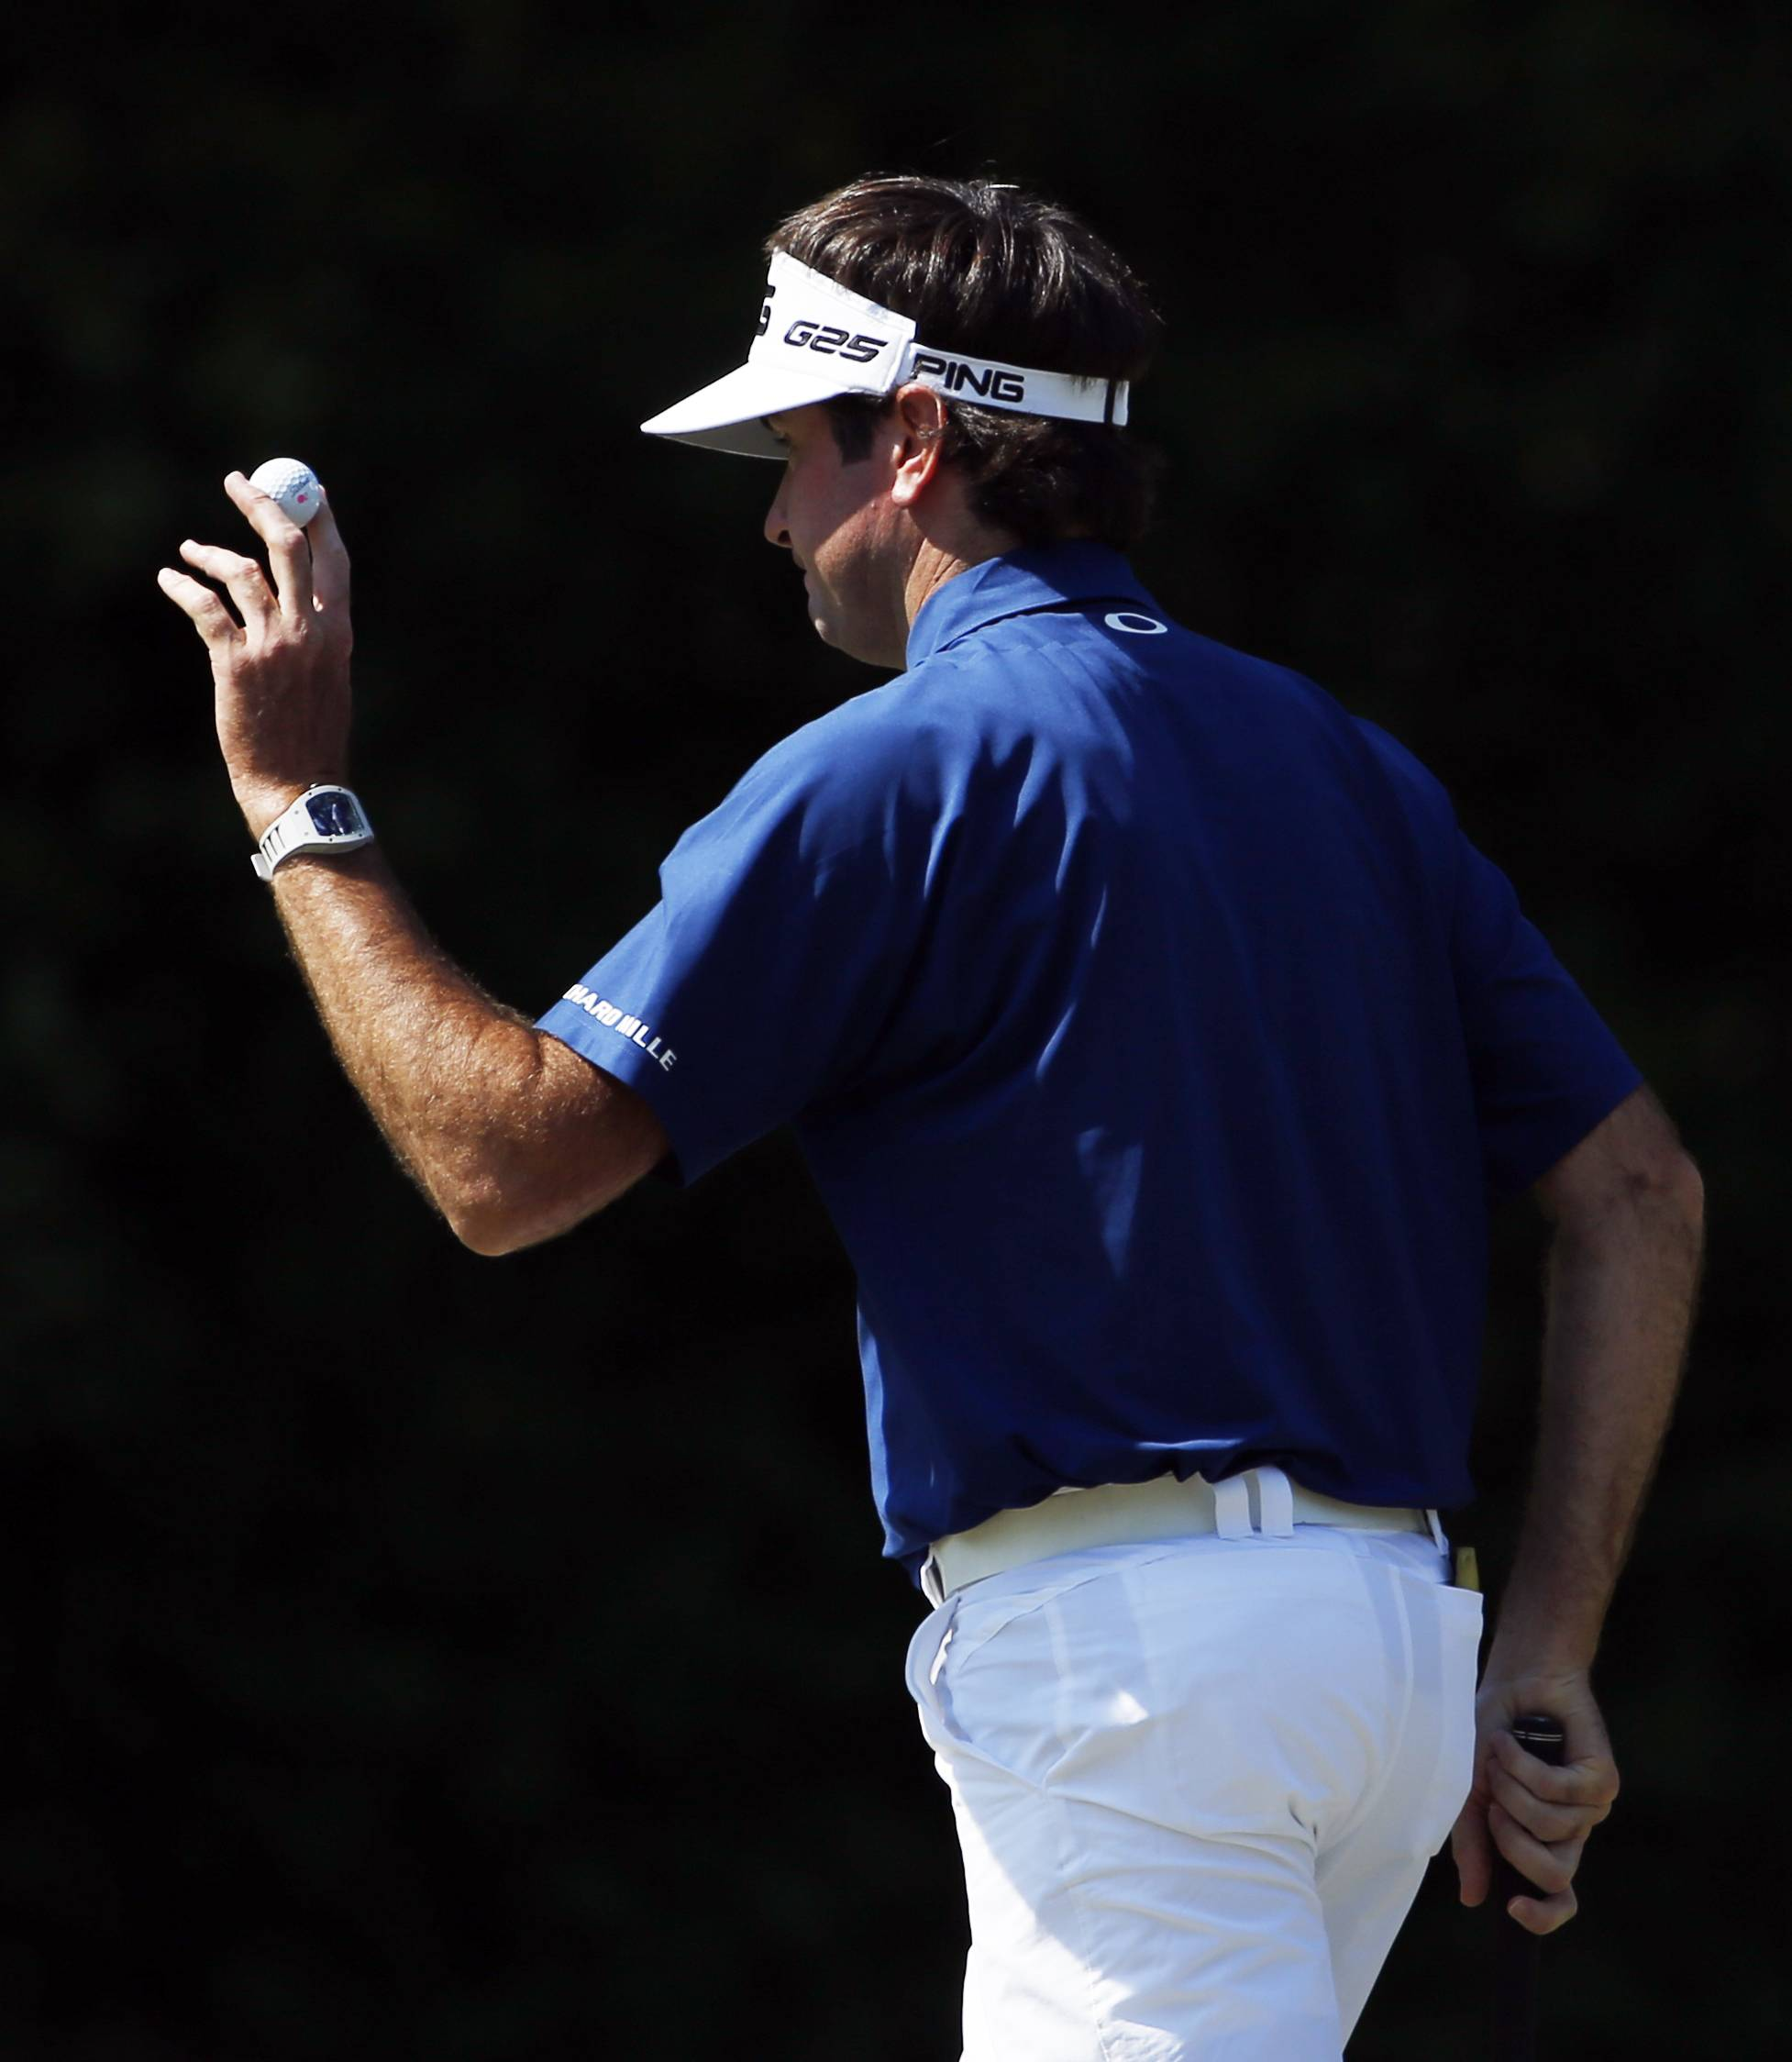 Bubba Watson holds up his ball after putting on the fourth hole during the third round of the Masters golf tournament Saturday in Augusta, Ga.